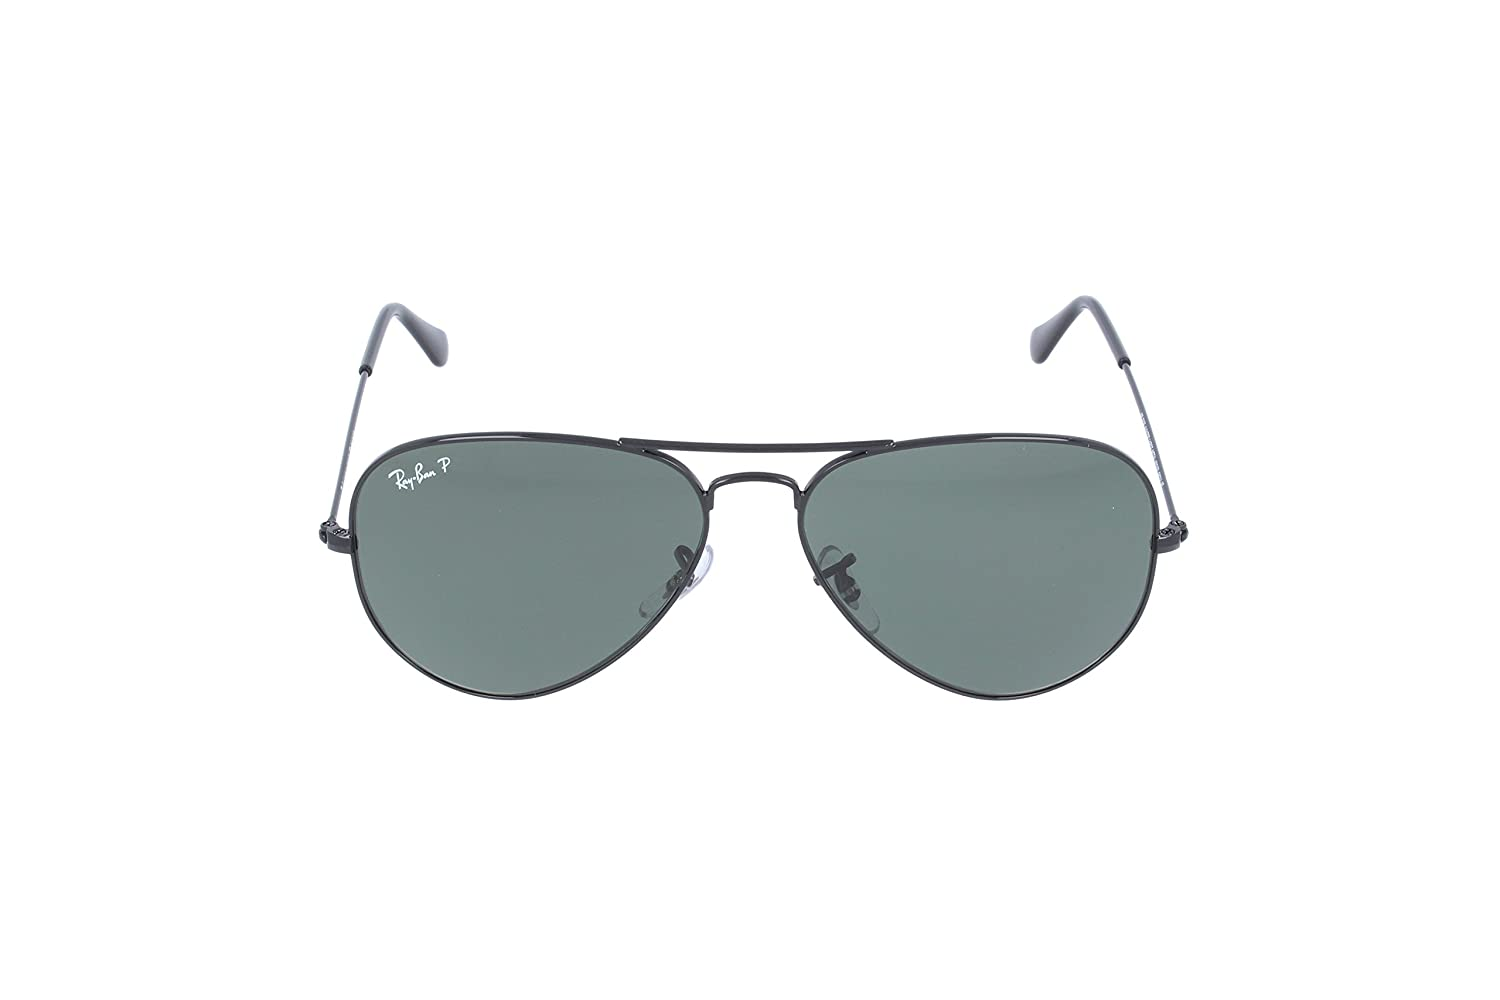 318cde2f8f4 Amazon.com  Ray-Ban AVIATOR LARGE METAL - BLACK Frame CRYSTAL GREEN  POLARIZED (004 58) Lenses